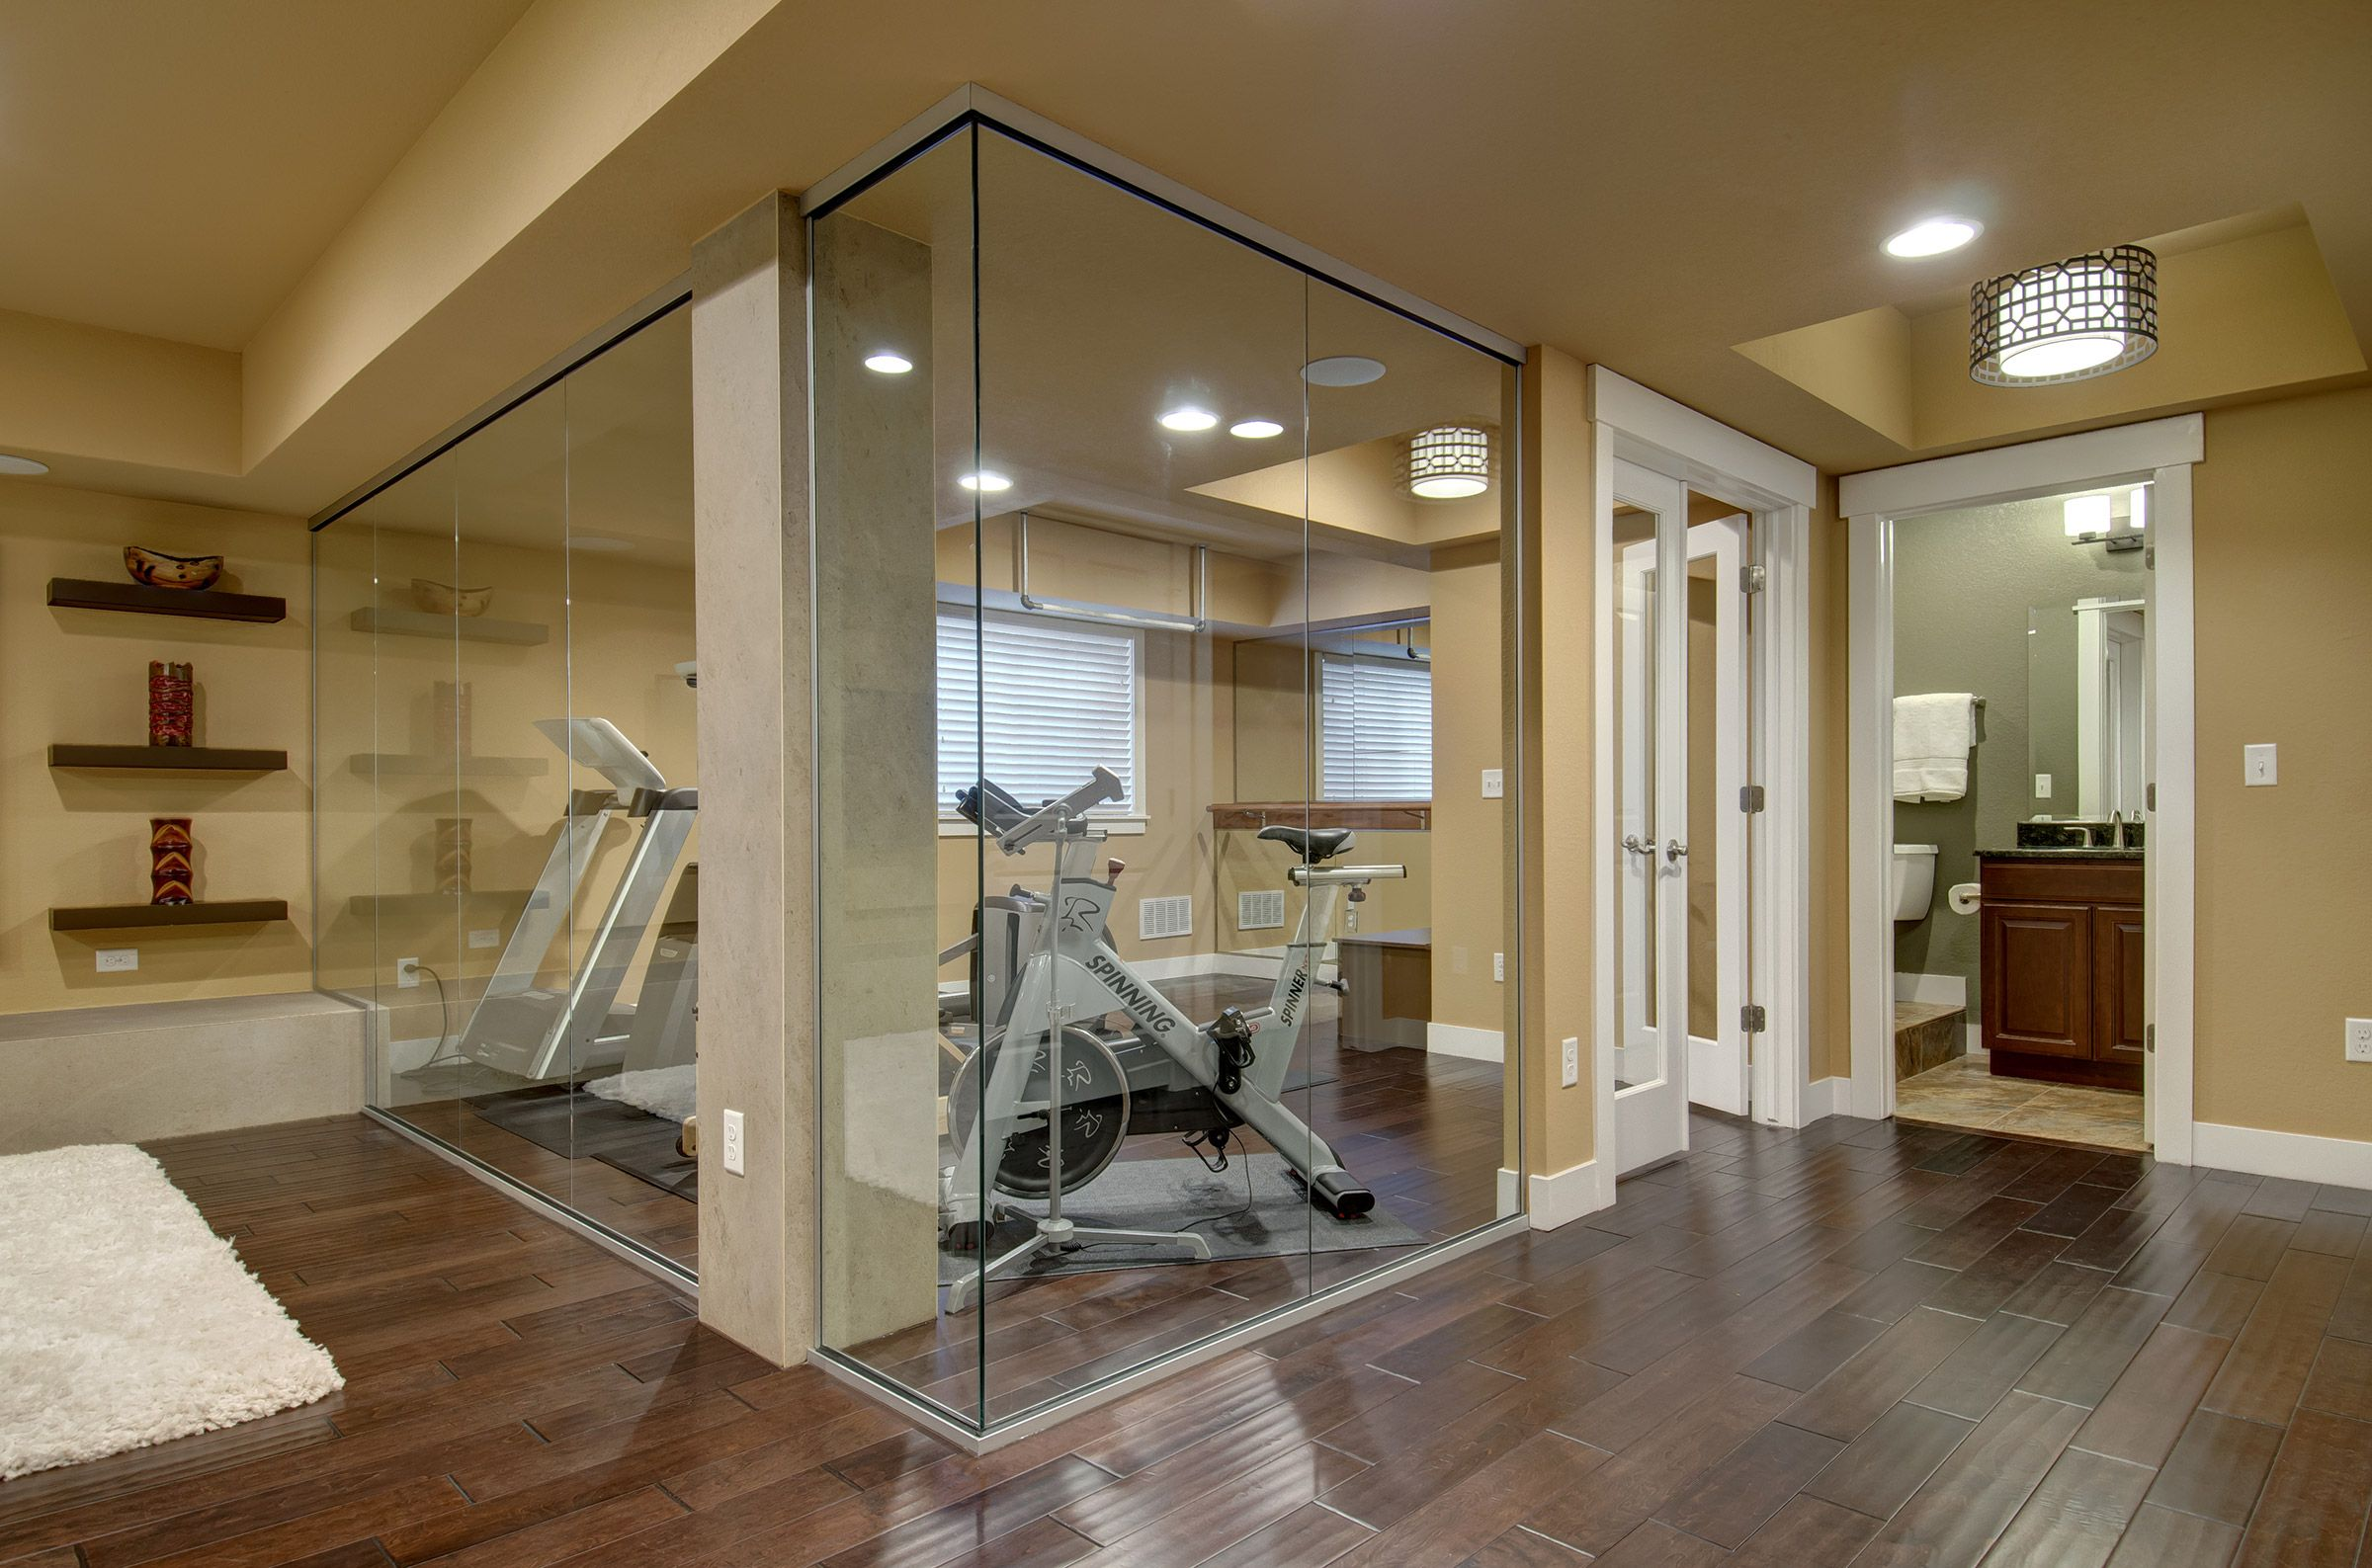 home gym decorating ideas with glass wall | This unique design will make everyone want to exercise ...